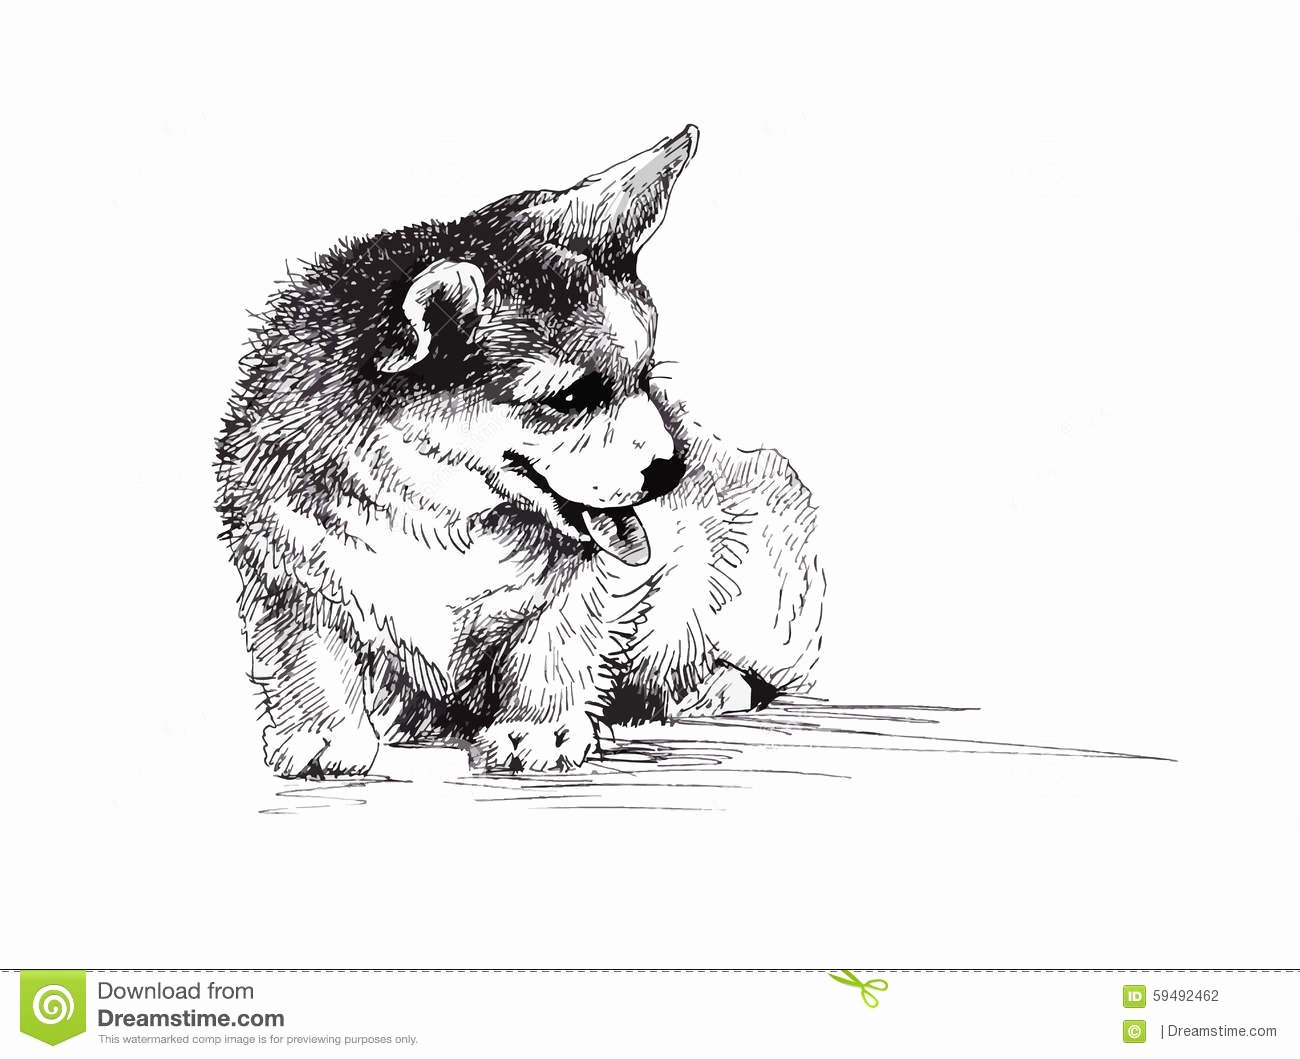 Black and White Illustration New Puppy Dog Hand Drawn Black and White Illustration Sketch